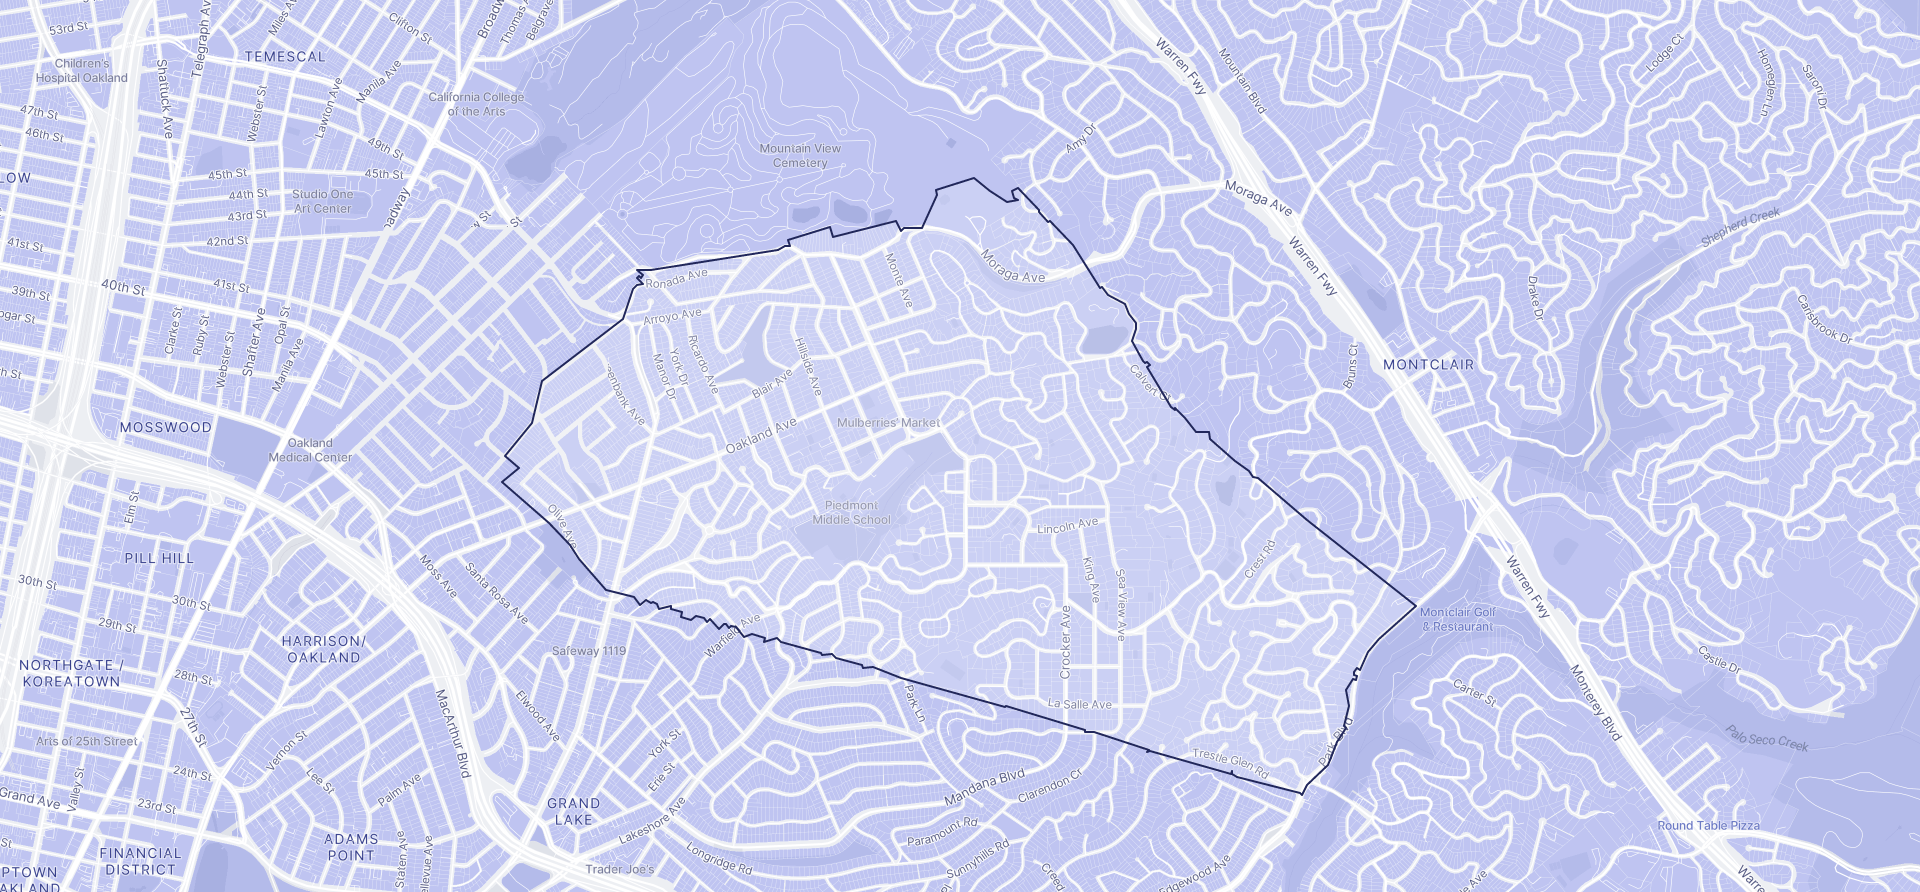 Image of Piedmont boundaries on a map.